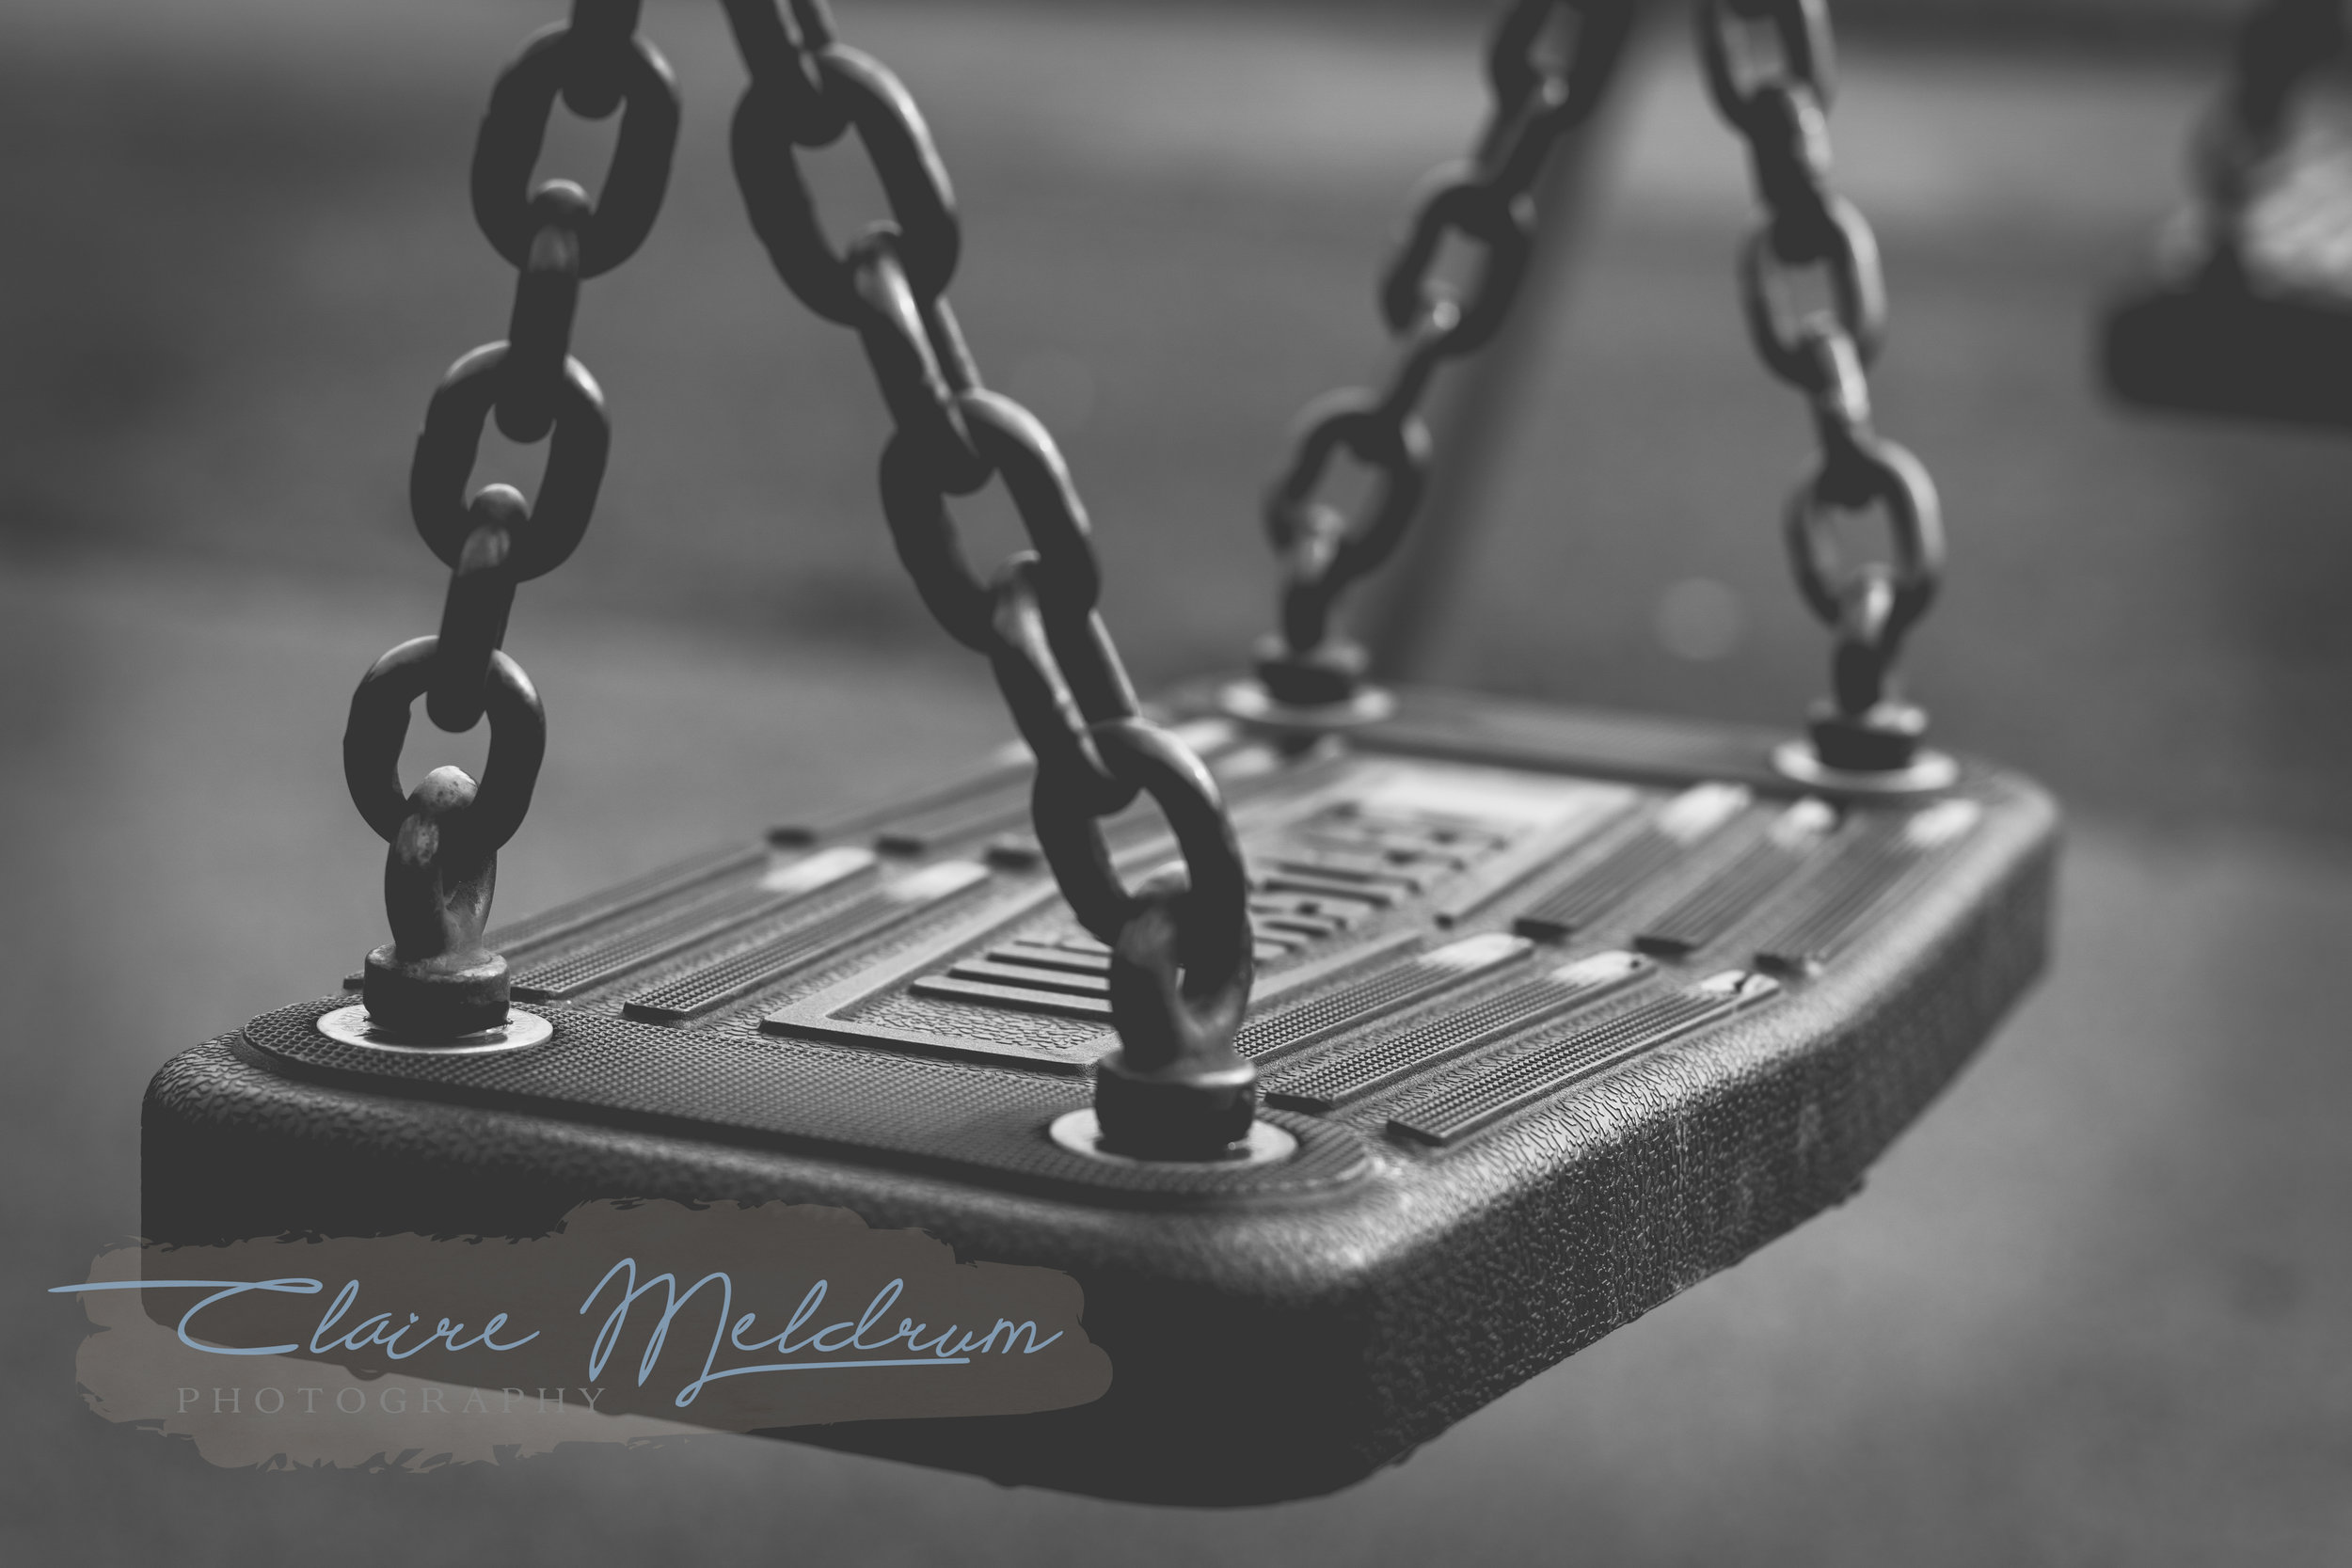 Swing seat Claire Meldrum Photography